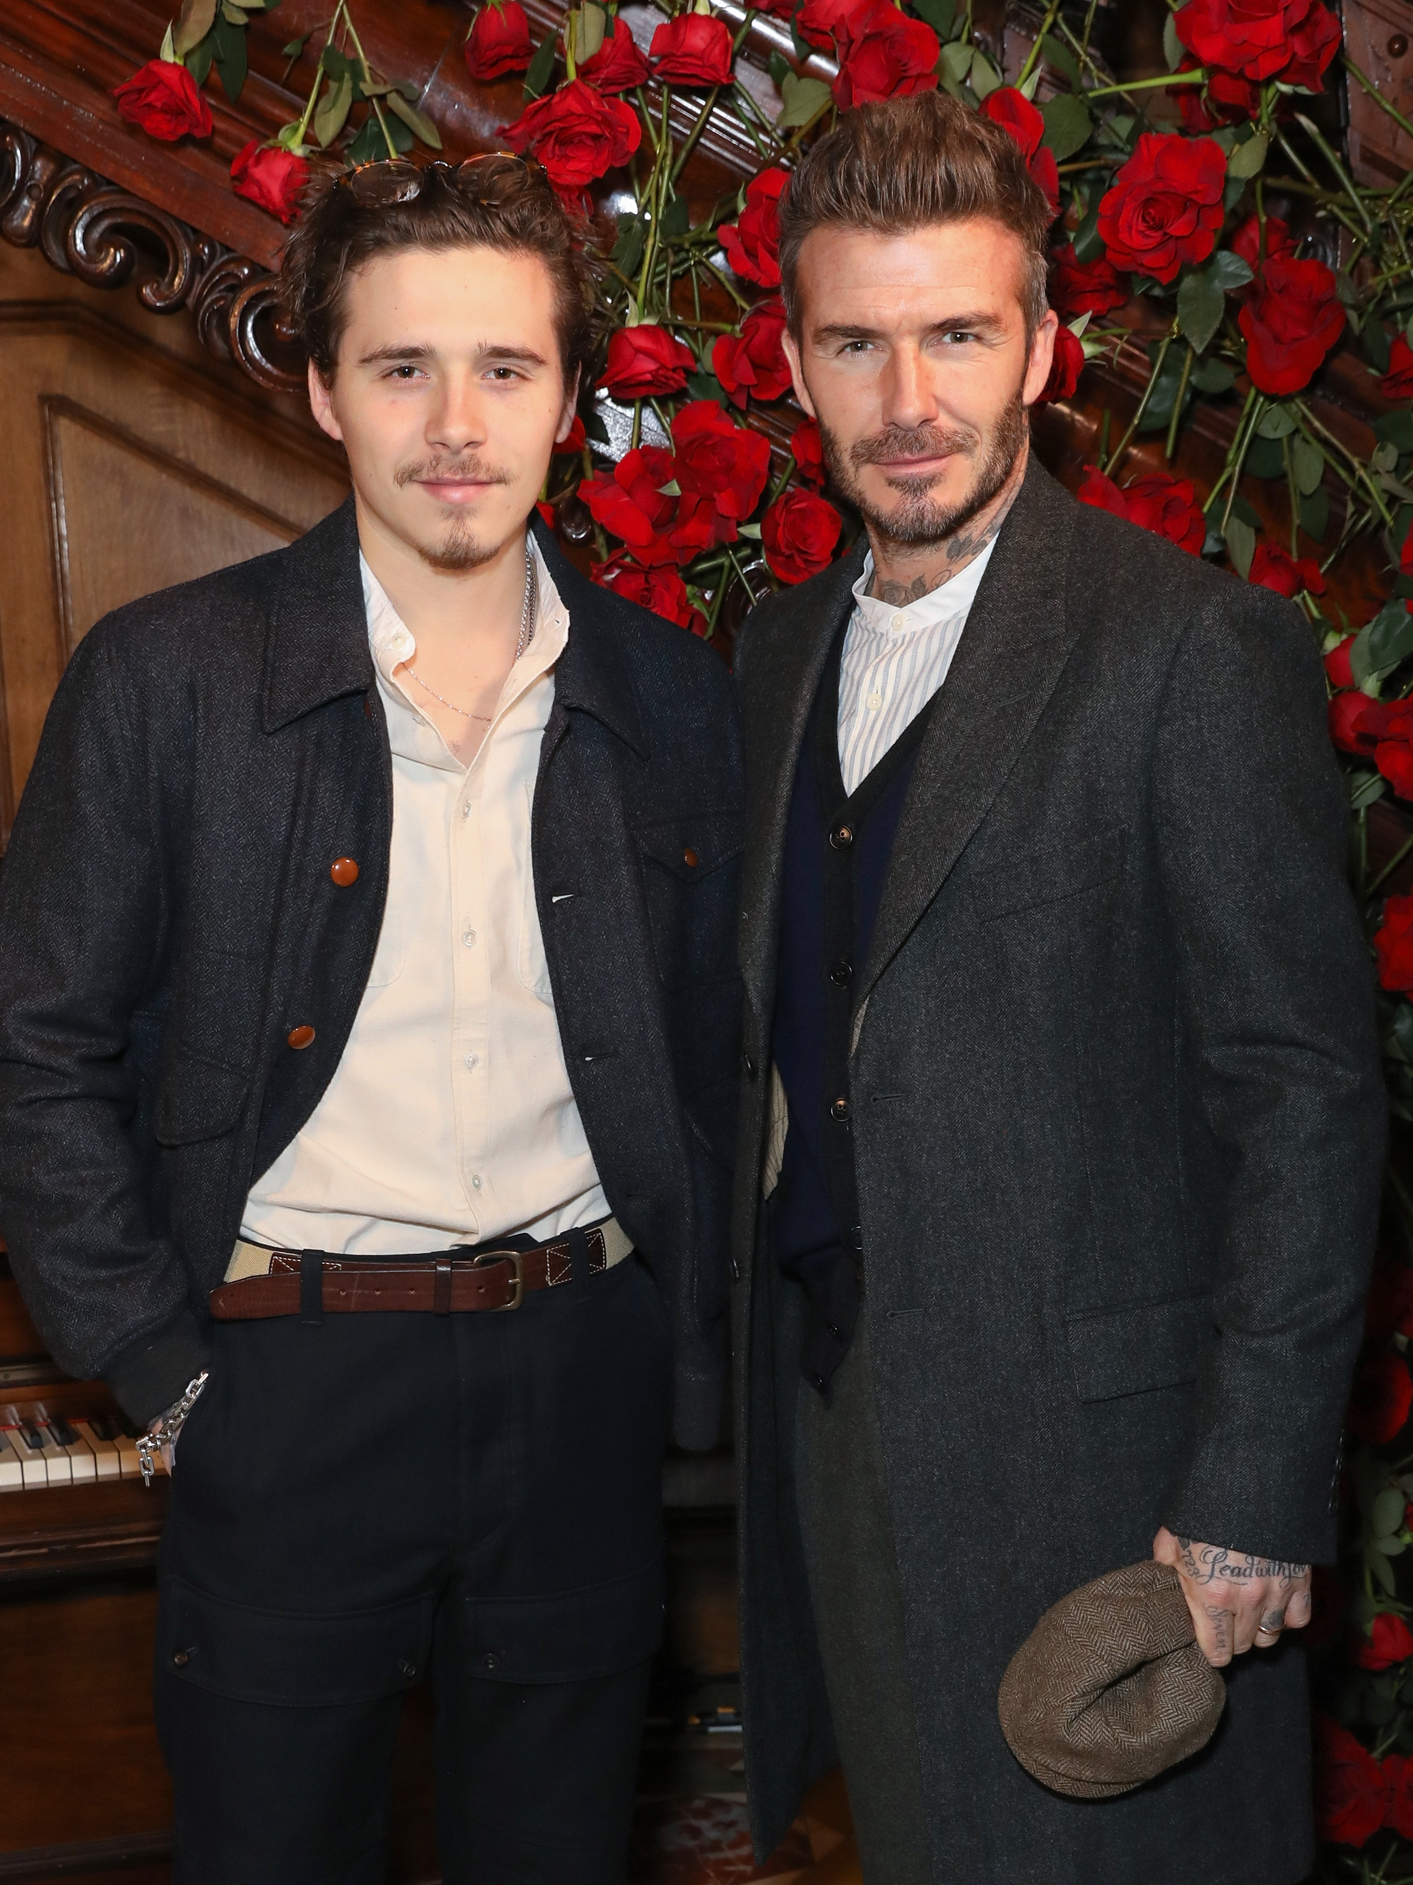 Brooklyn Beckham's Latest Look Is Proof He Could Have More ...  |Brooklyn Beckham